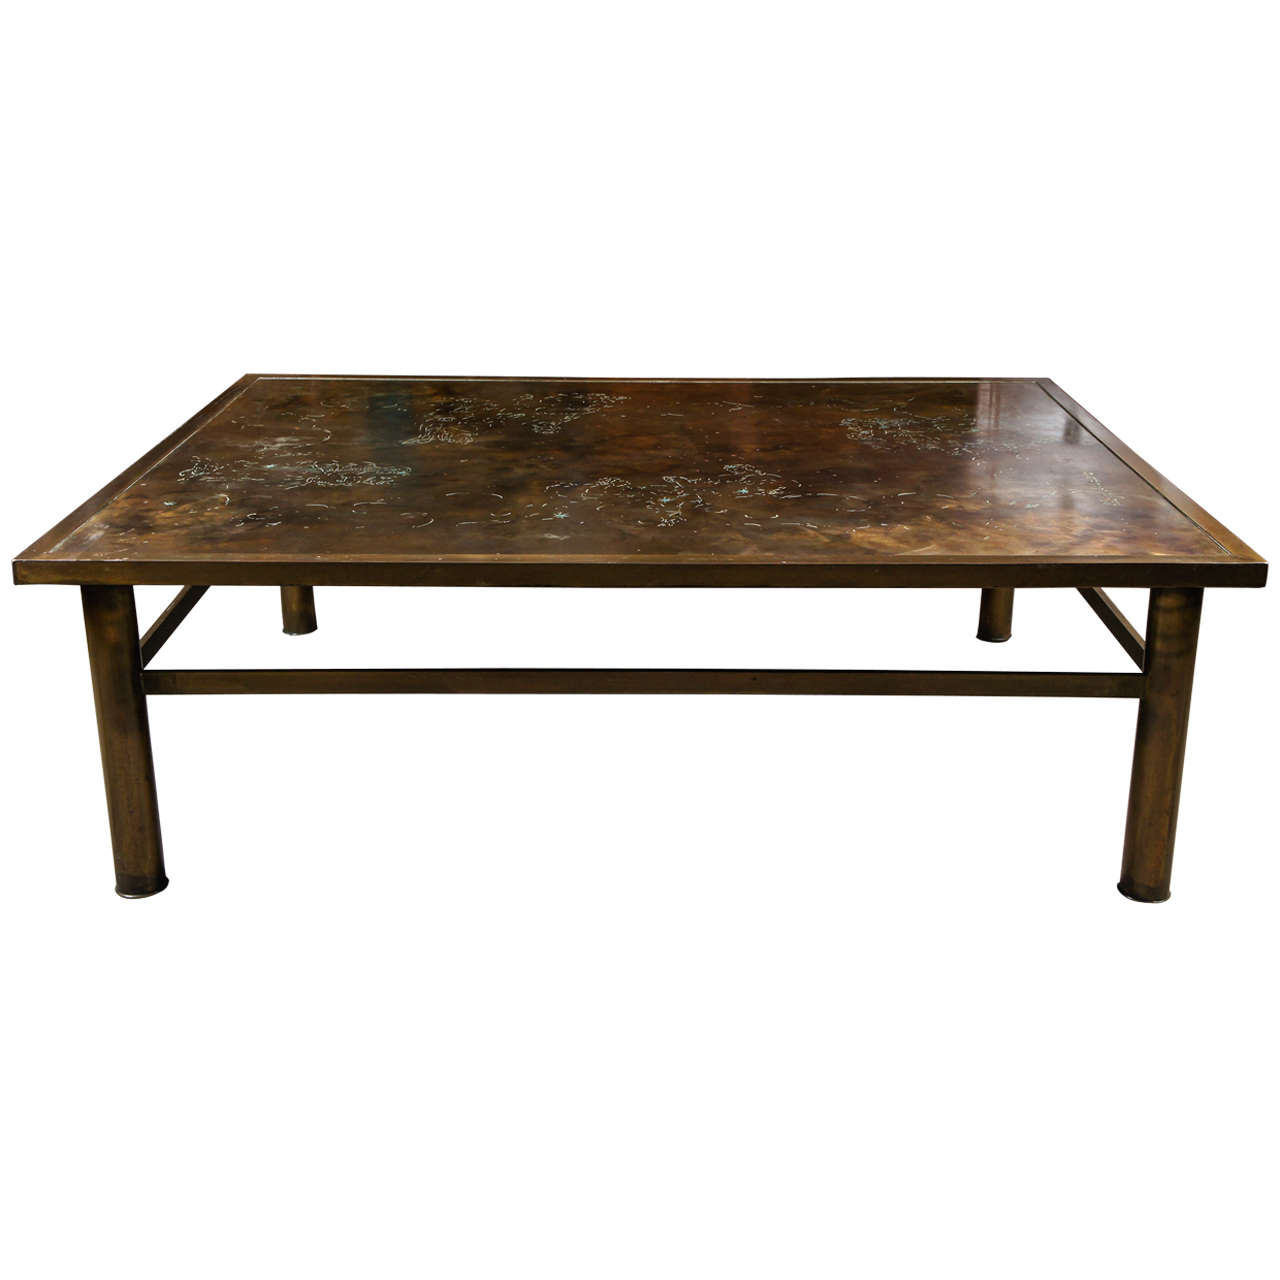 Bronze laverne coffee table at 1stdibs Bronze coffee tables